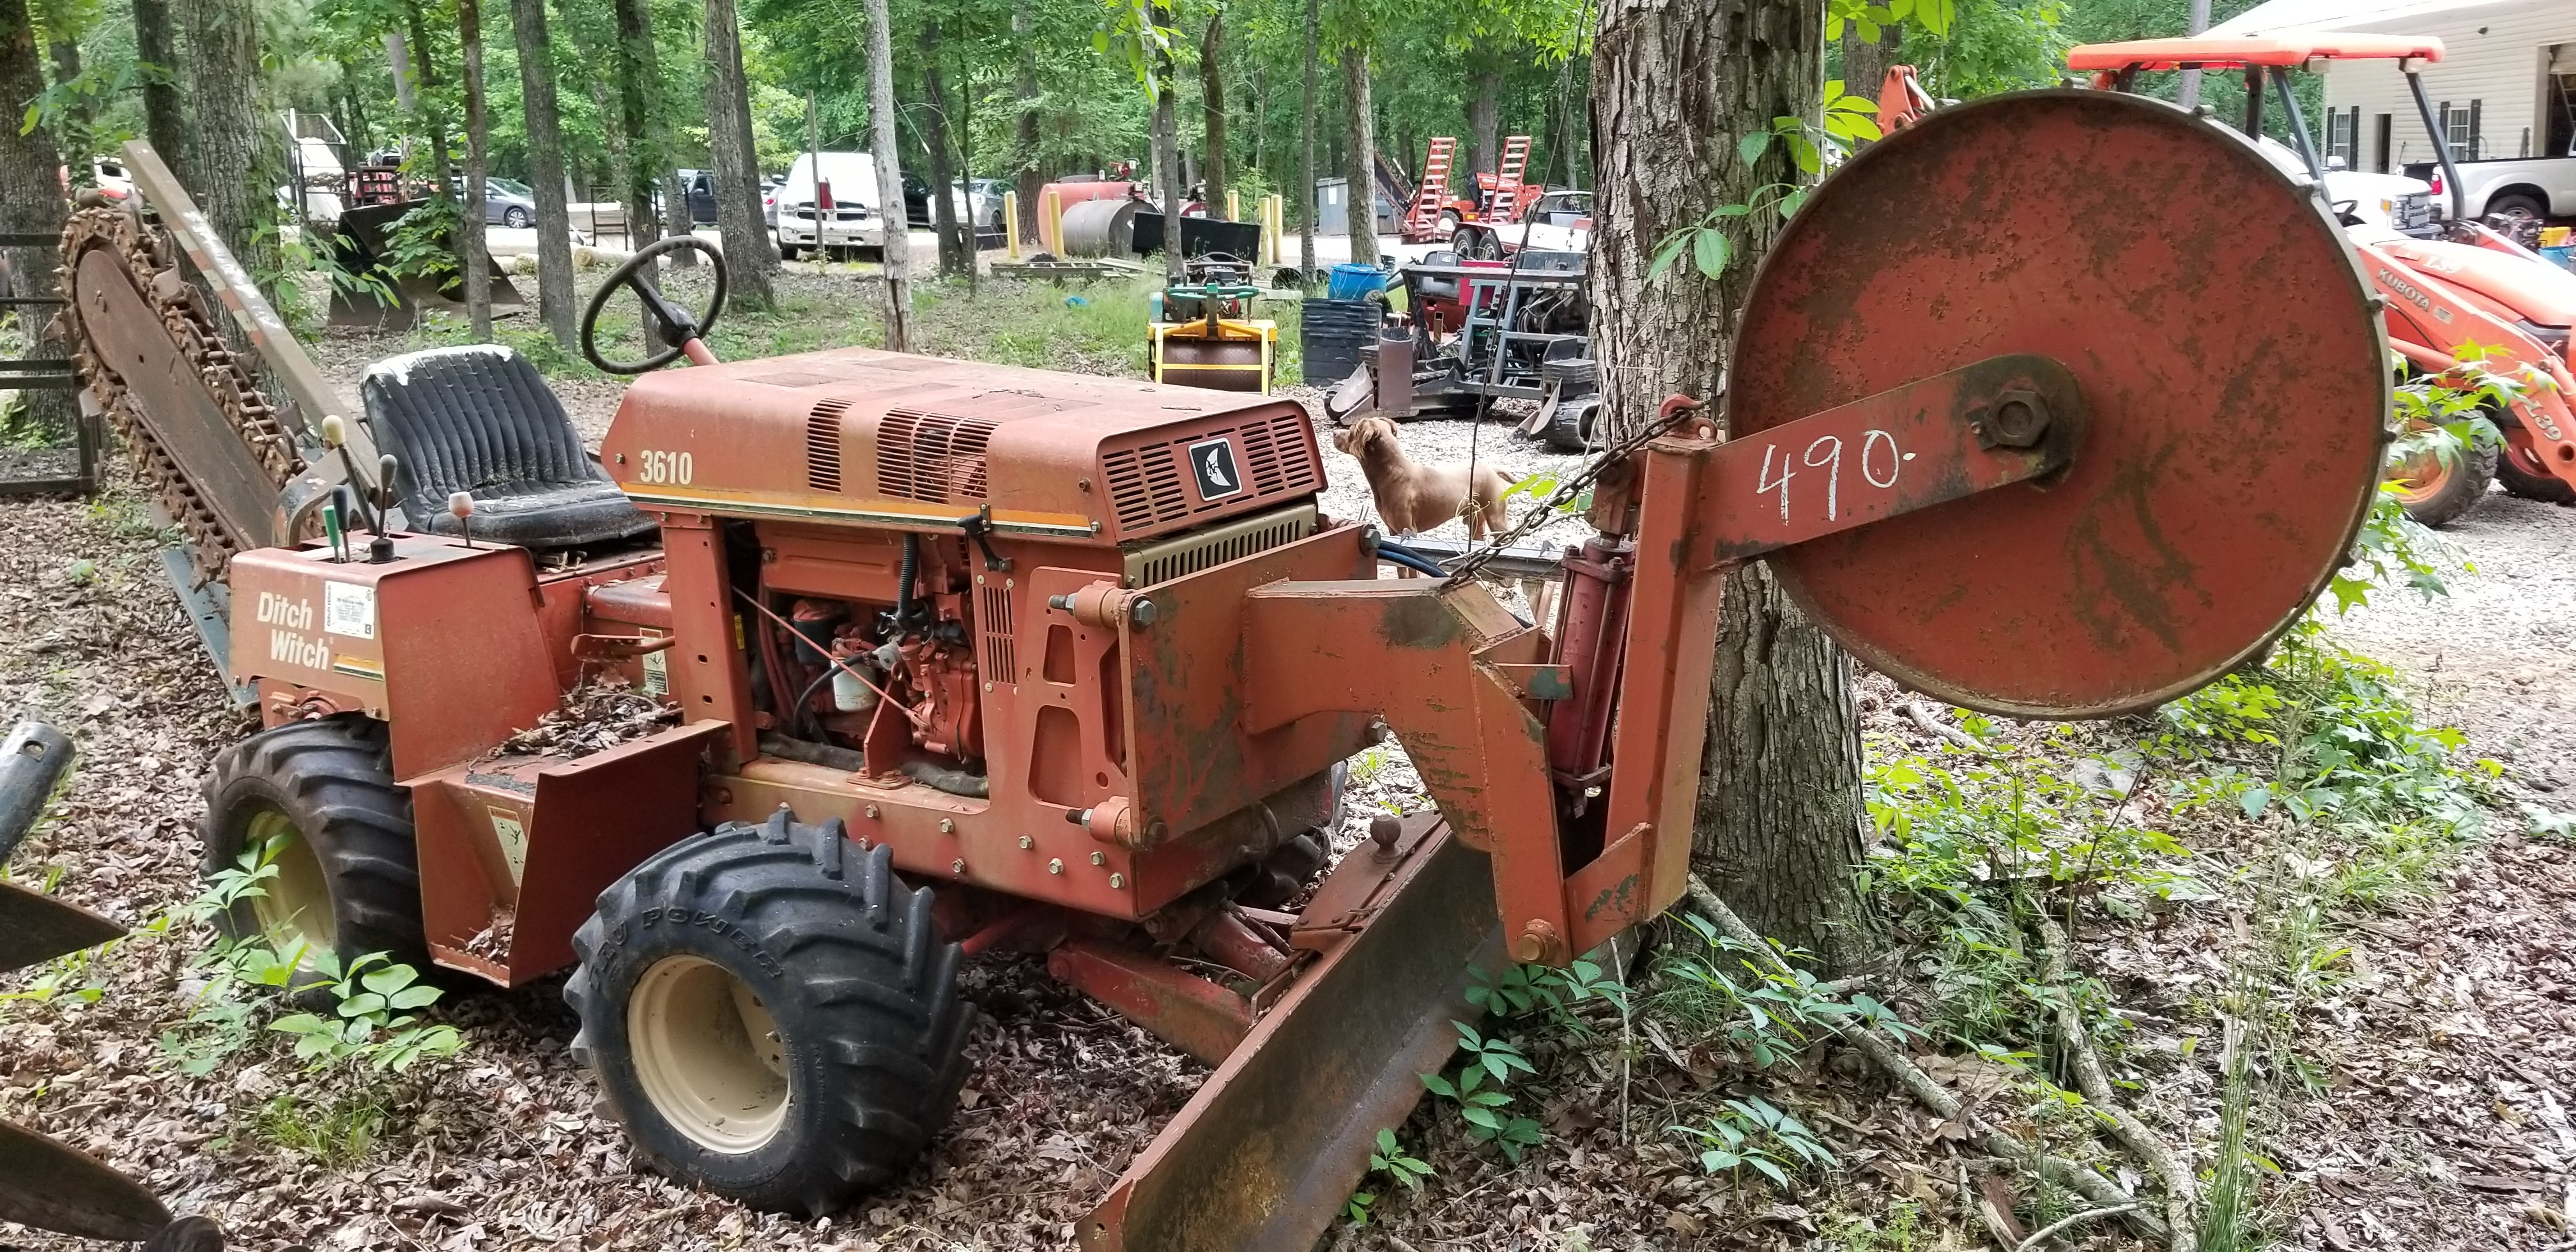 Used, Ditch Witch, Trencher, ride-on, tires, 3610, consignment, deal, working